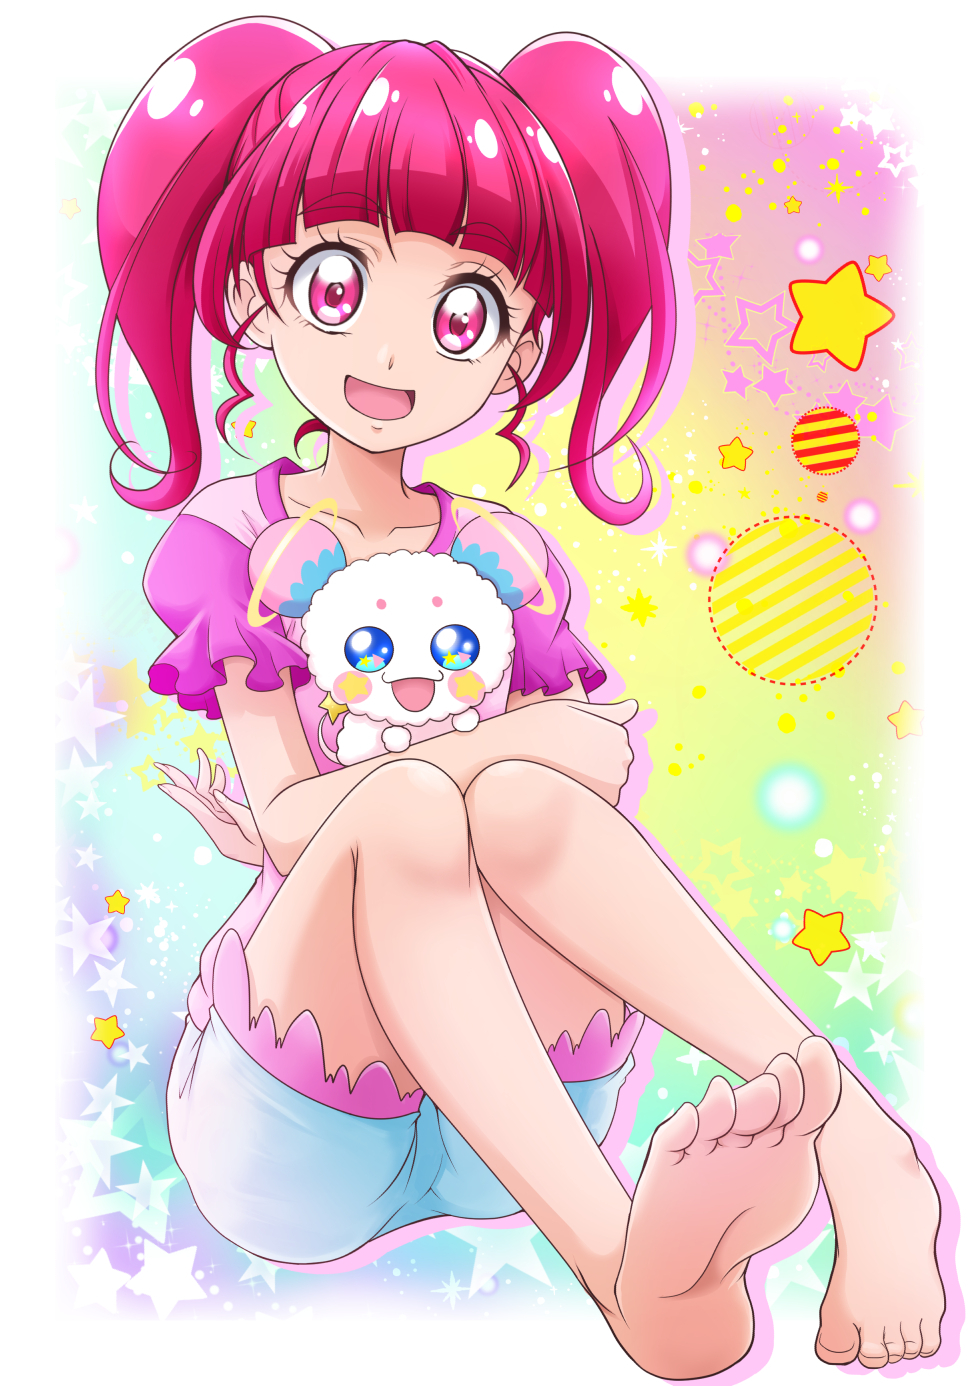 1girl :d bangs barefoot blunt_bangs collarbone eyebrows_visible_through_hair feet full_body fuwa_(precure) hanzou highres hoshina_hikaru long_hair looking_at_viewer open_mouth pink_eyes pink_hair pink_shirt precure shiny shiny_hair shirt short_shorts short_sleeves shorts sitting smile soles solo star star_twinkle_precure toes white_background white_shorts